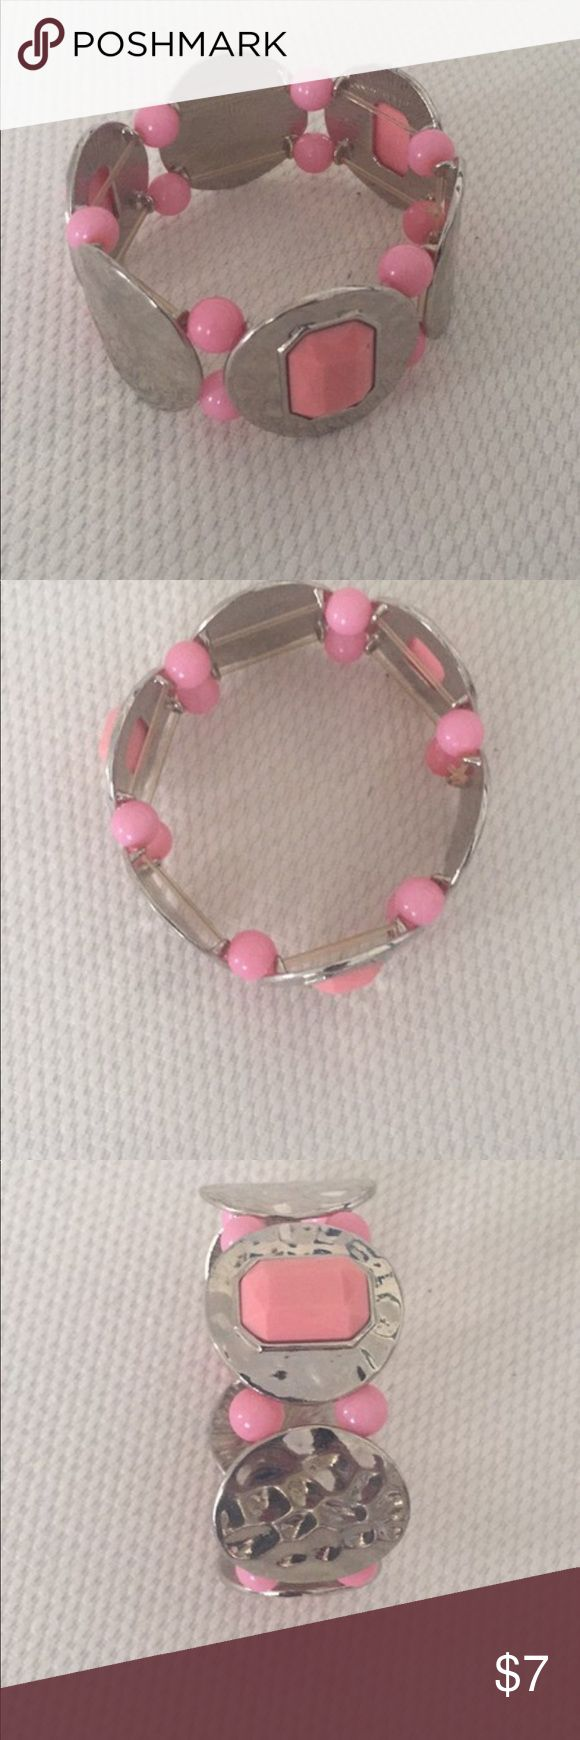 Wallis UK Silver Hammered Metal Bangle Wallis UK Silver Hammered Metal Bangle with Pink accents. One Size fits most. Stretchy clear nylon on the inside. No flaws. Wallis Jewelry Bracelets